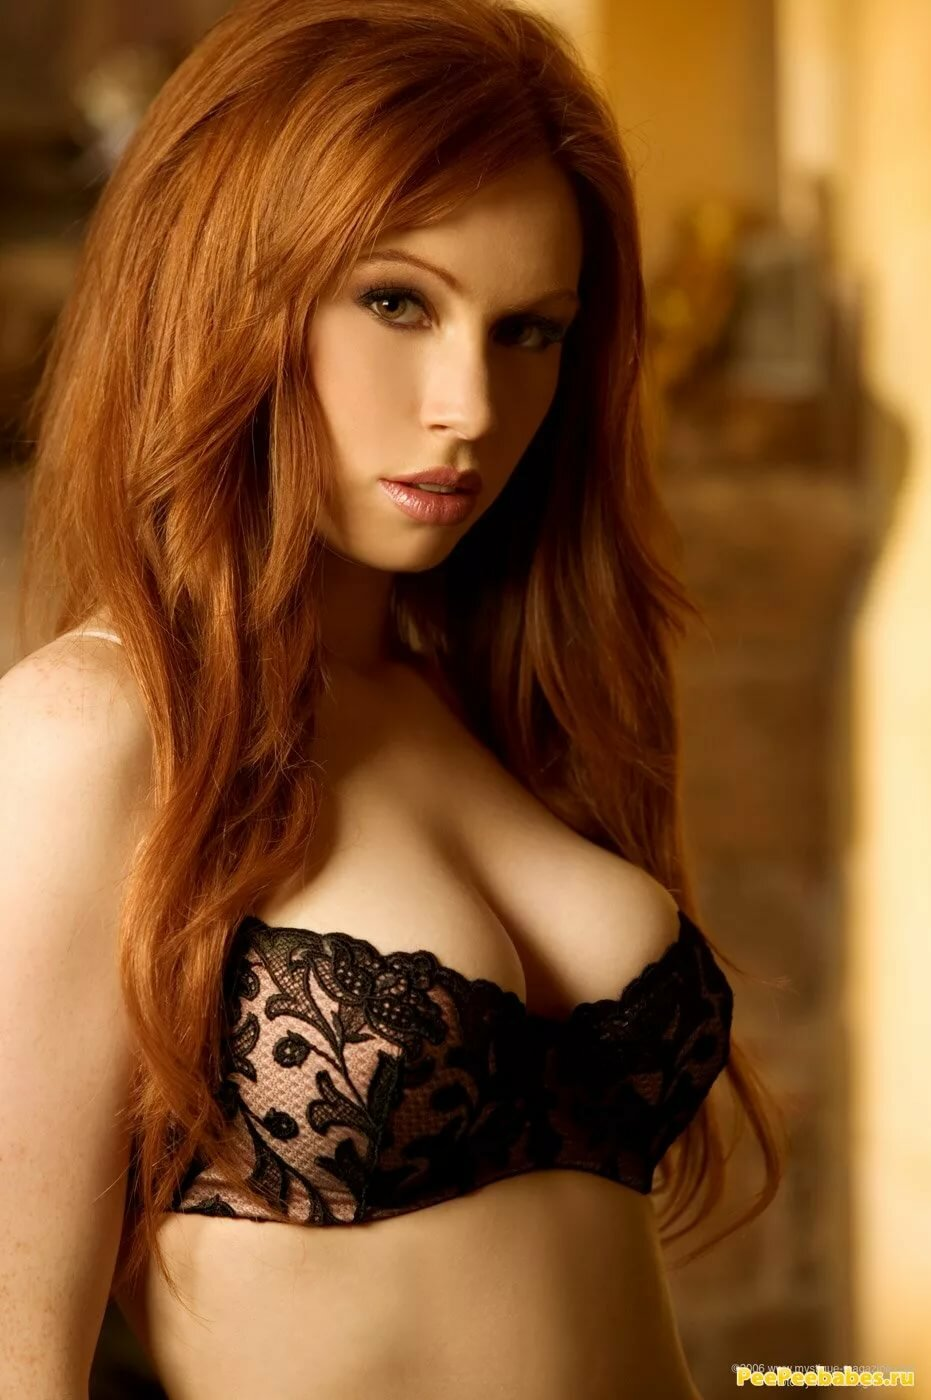 red-head-girls-naked